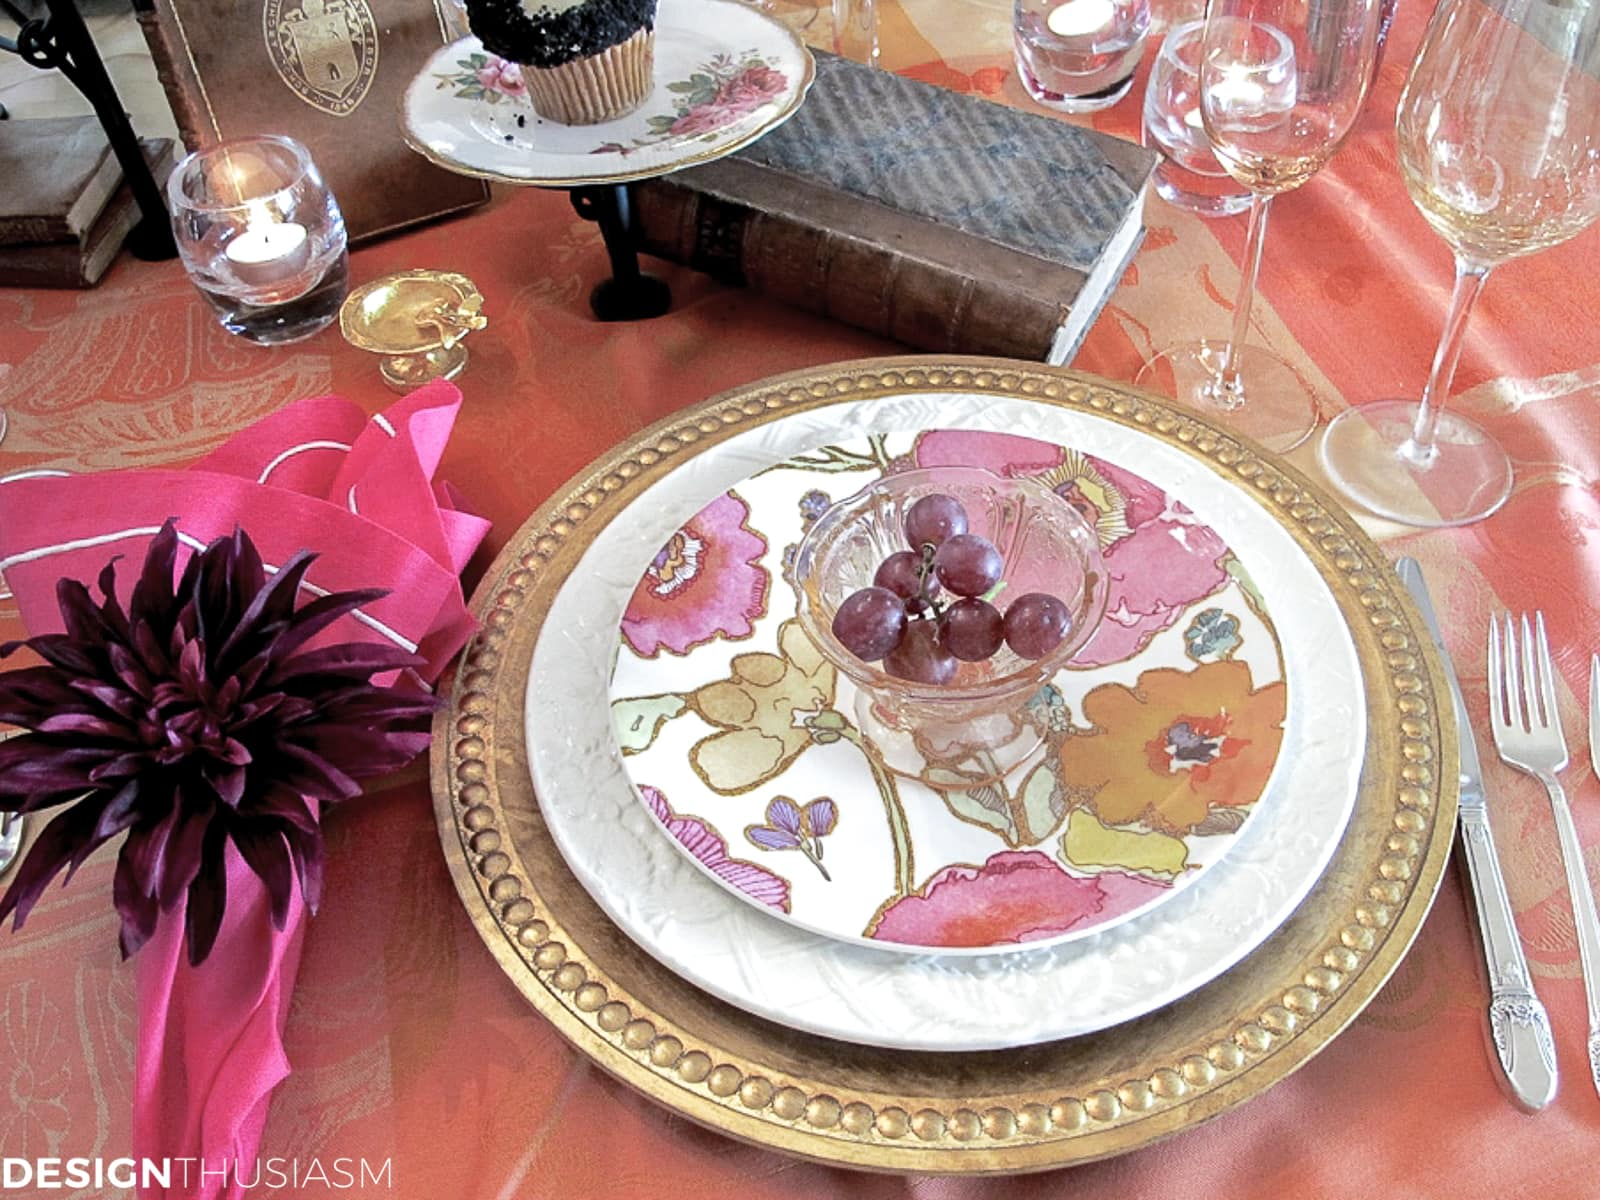 floral plates on a book club table setting with vintage books